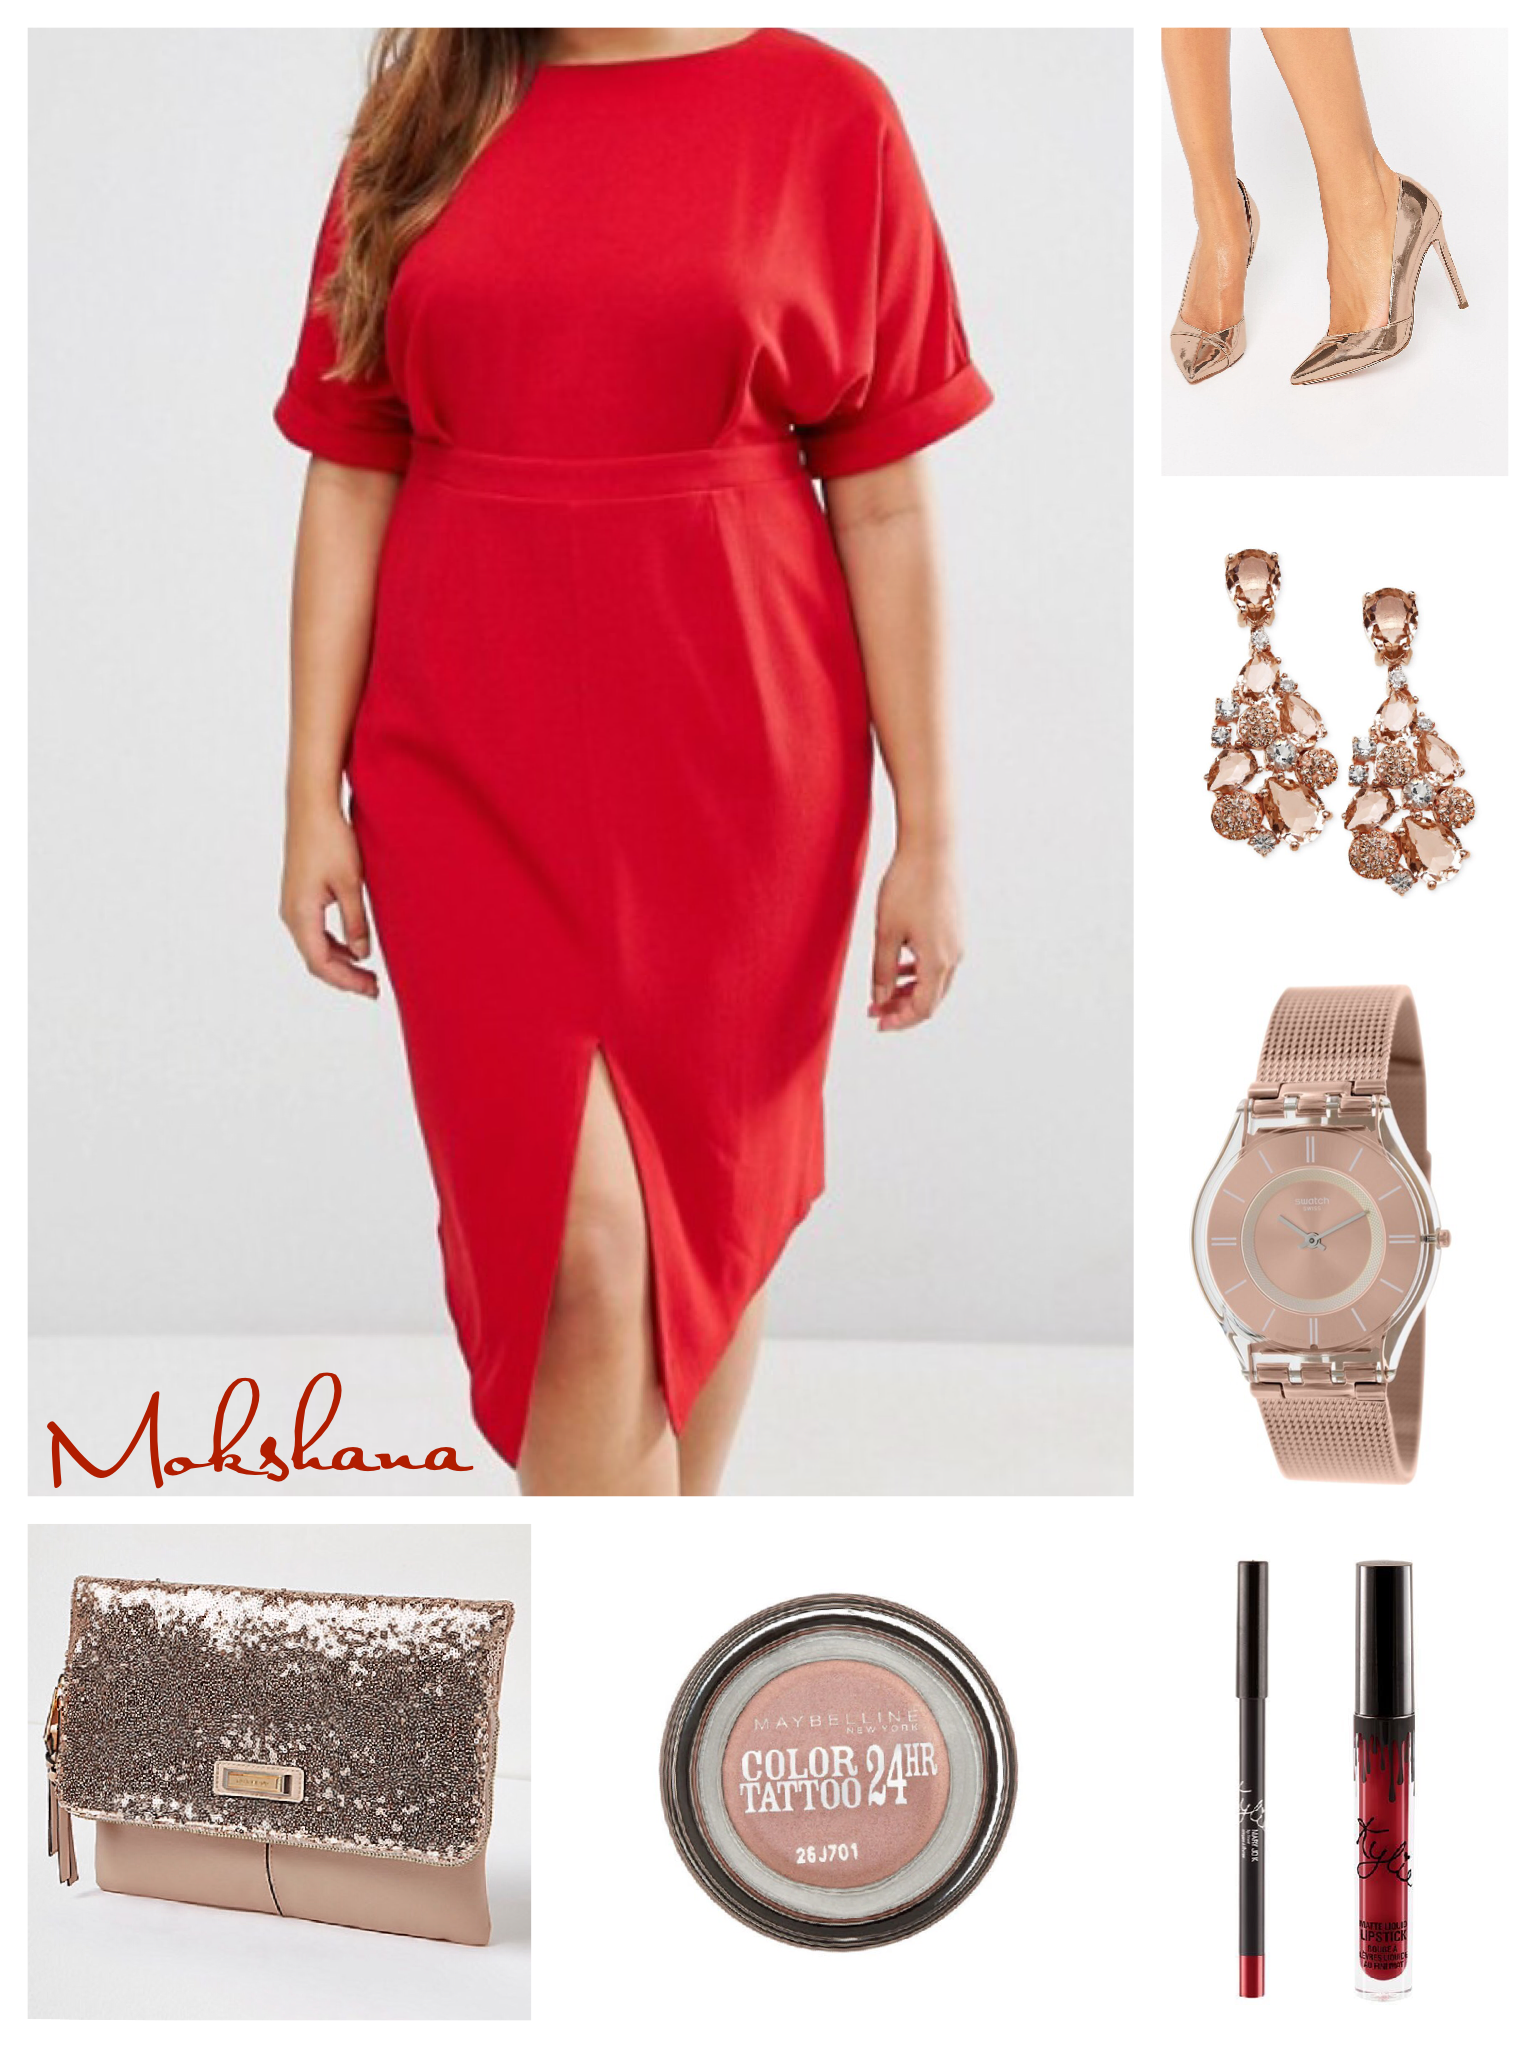 fb471837a0 Rose gold accessories with a bright red dress | Outfits | Dresses ...